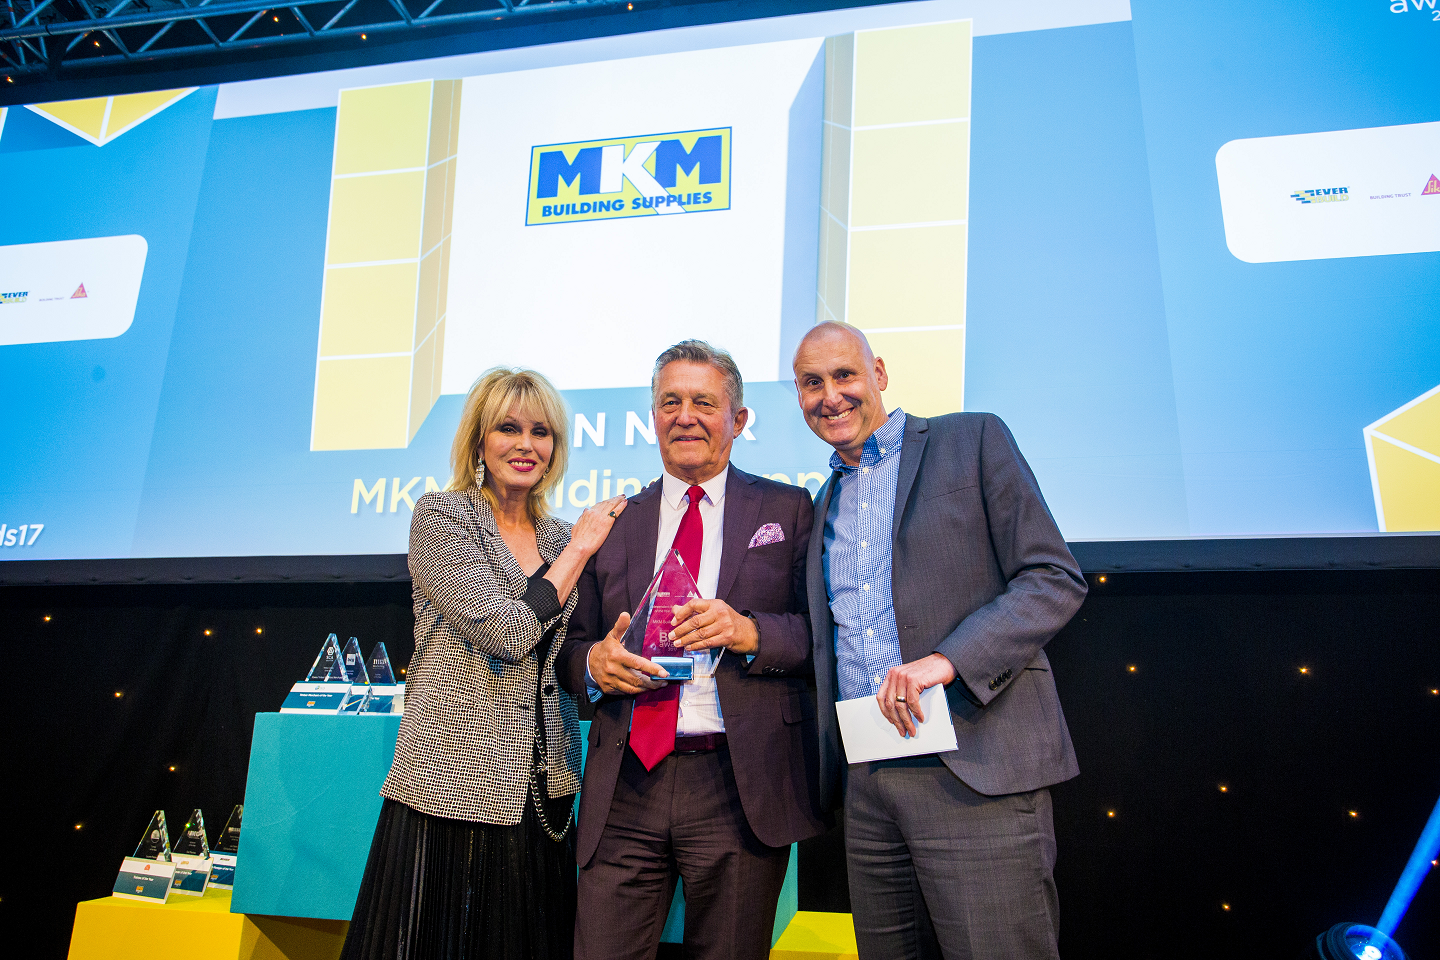 Winner of Independent Builders' Merchant of the Year (21+ branches); Joanna Lumley, David Kilburn, Executive Chairman - MKM Building Supplies ,  Greg Senior, Head of Merchant Sales & Independents - Sika Everbuild